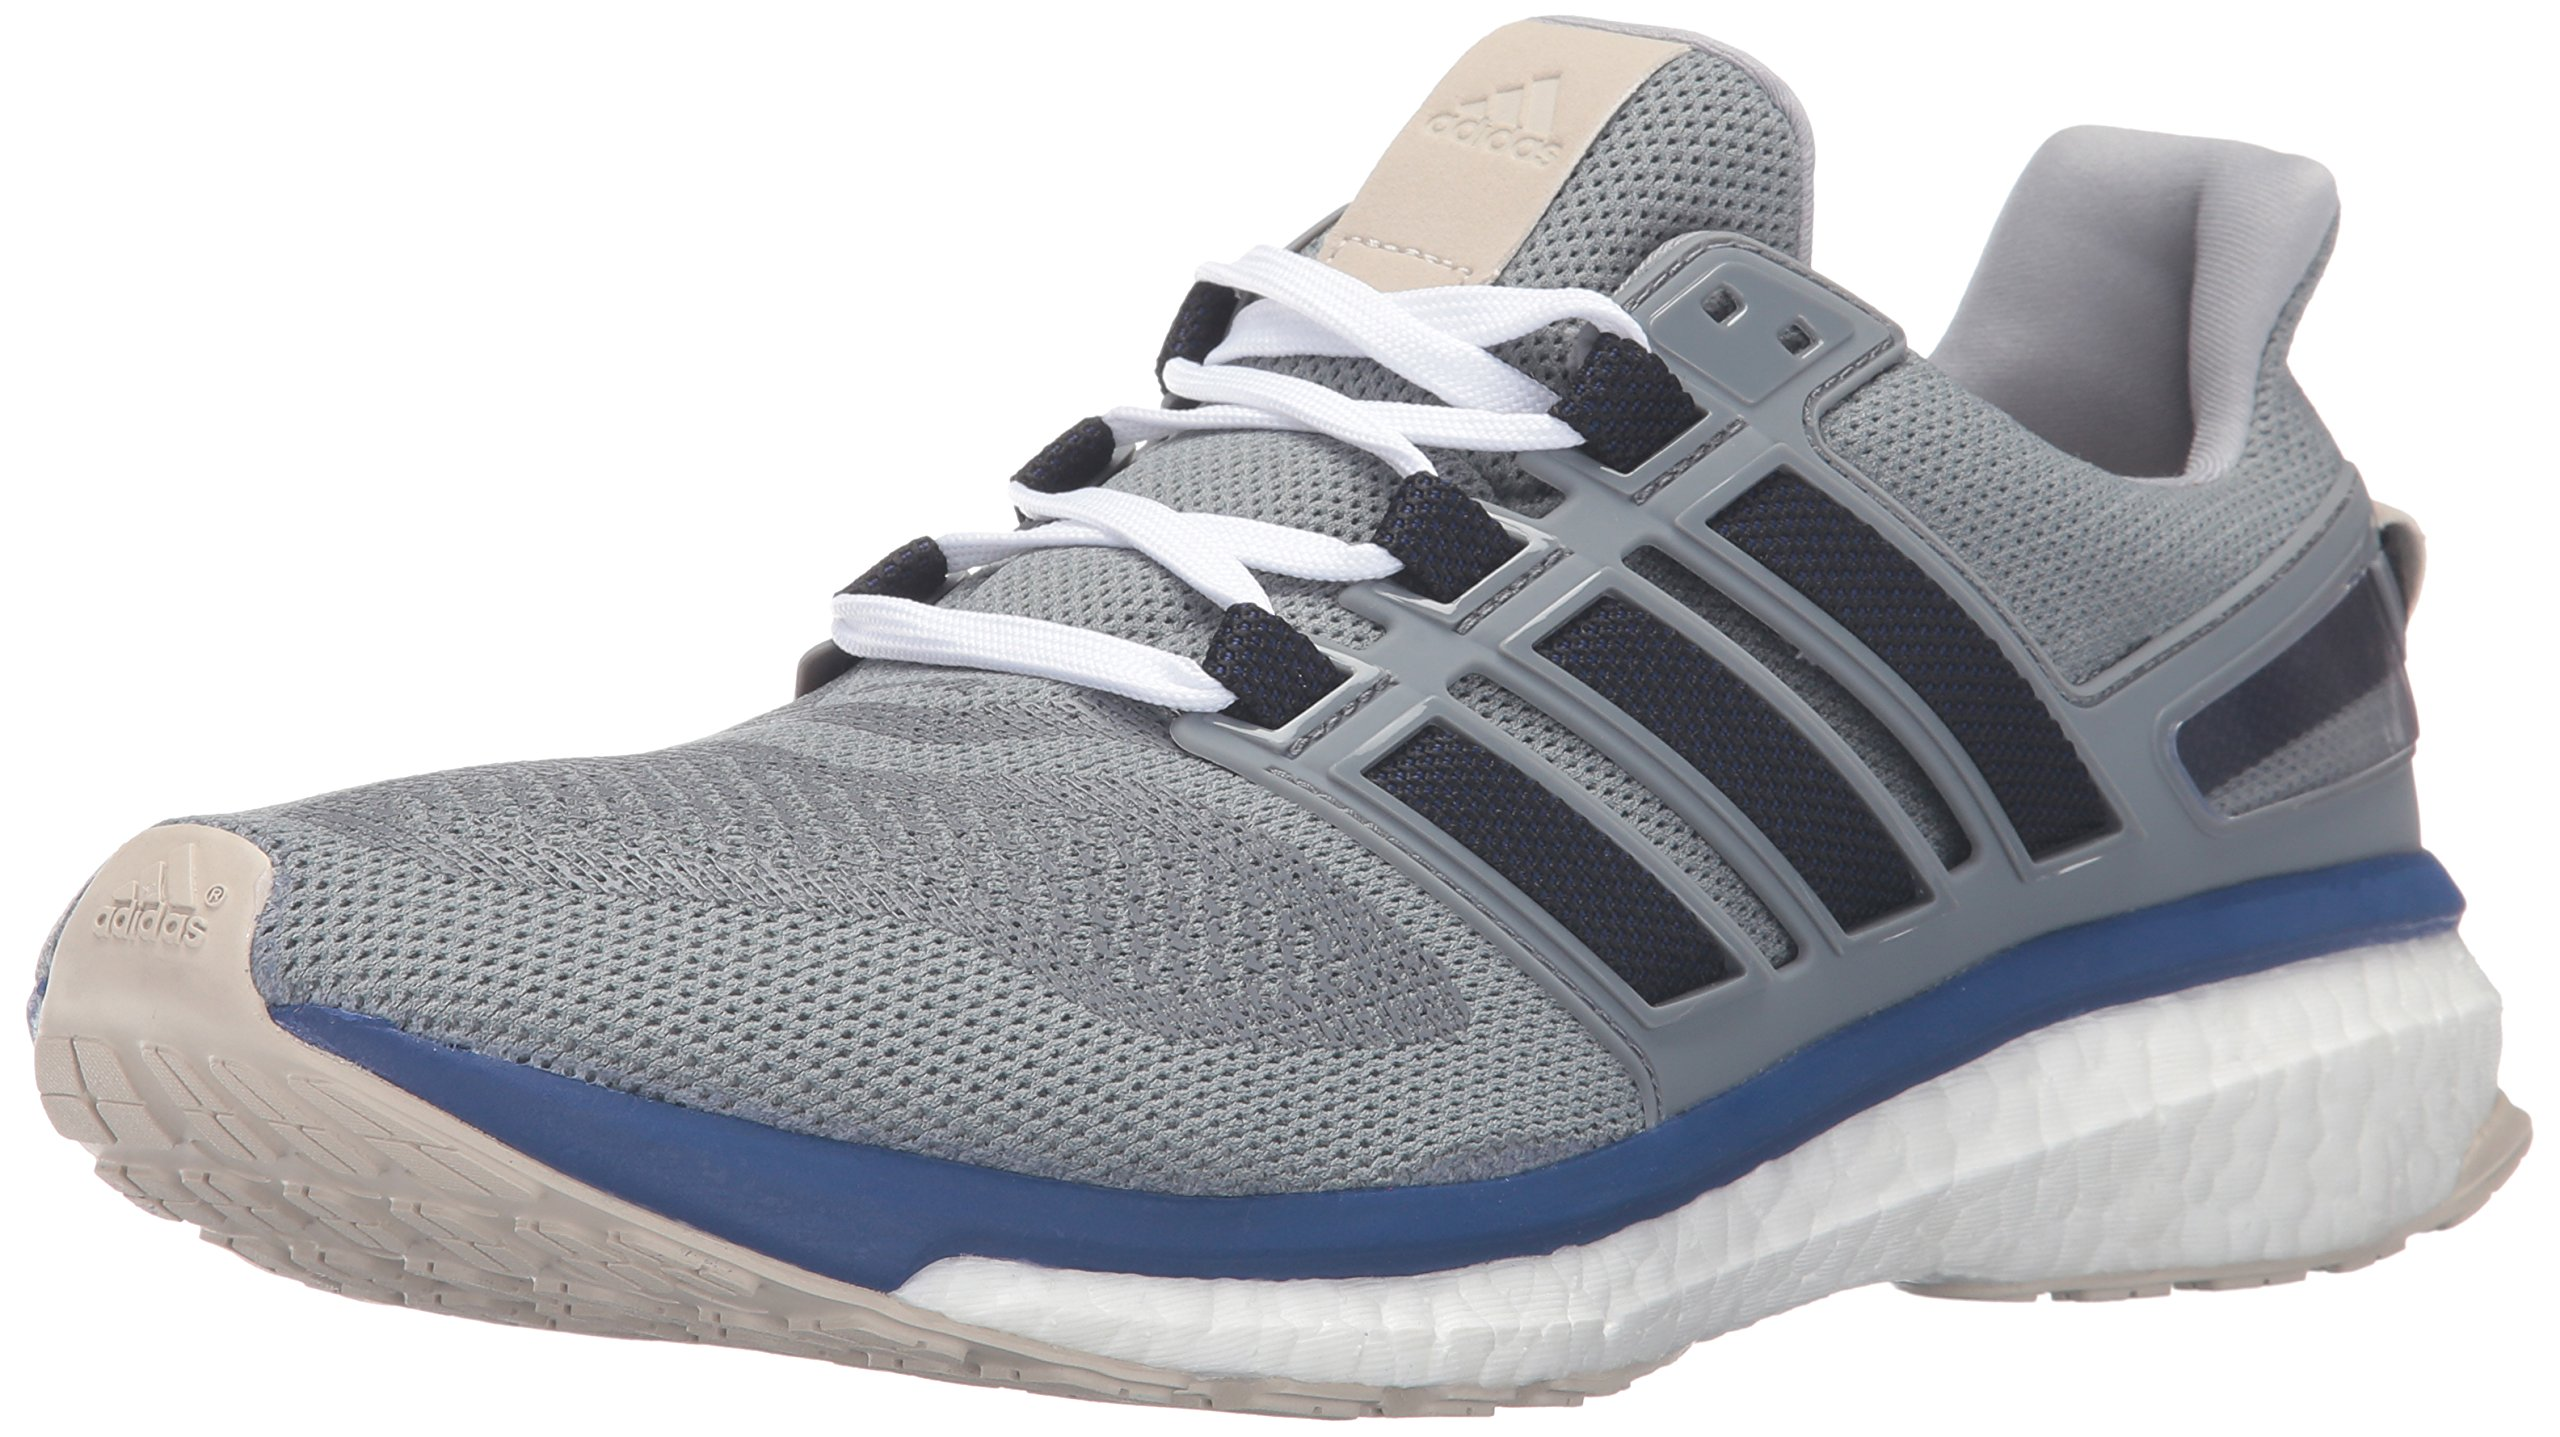 6fb925db5 Galleon - Adidas Performance Men s Energy Boost 3 Running Shoe